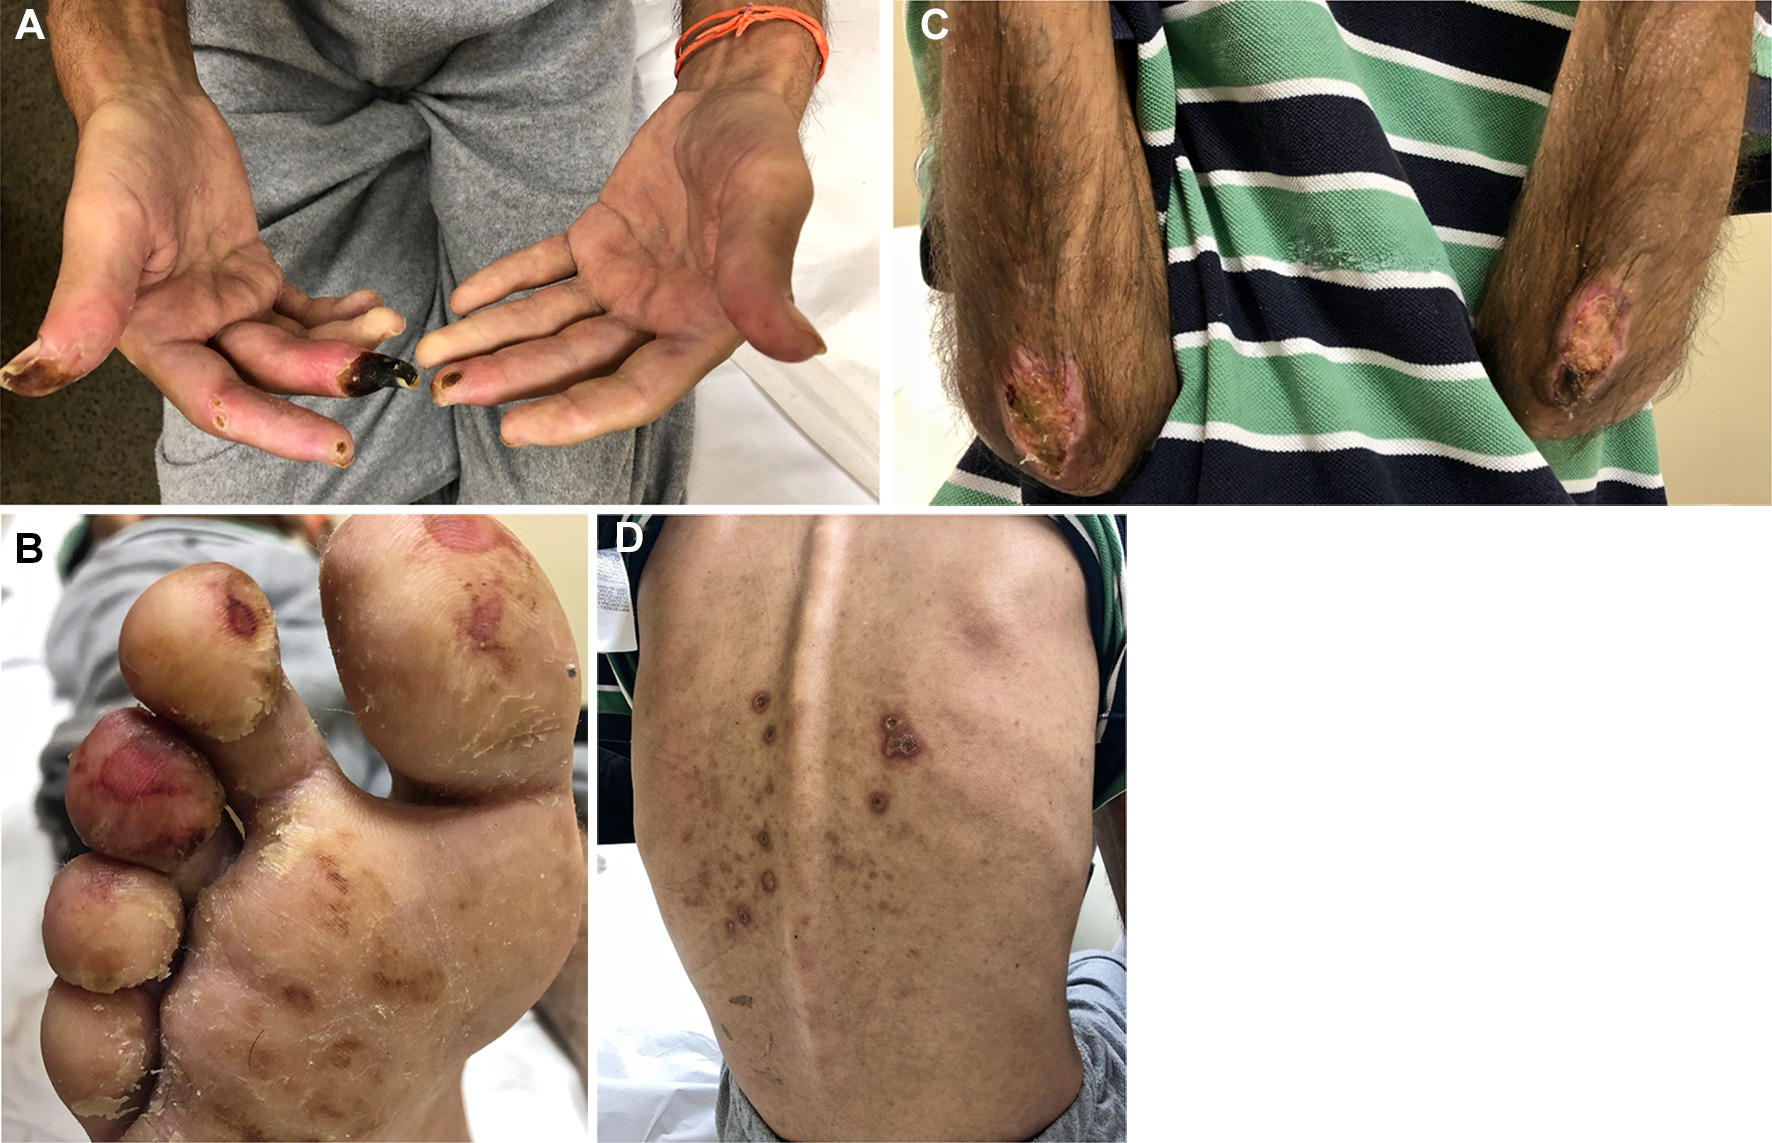 Systemic sclerosis induced by the use of cocaine: is there